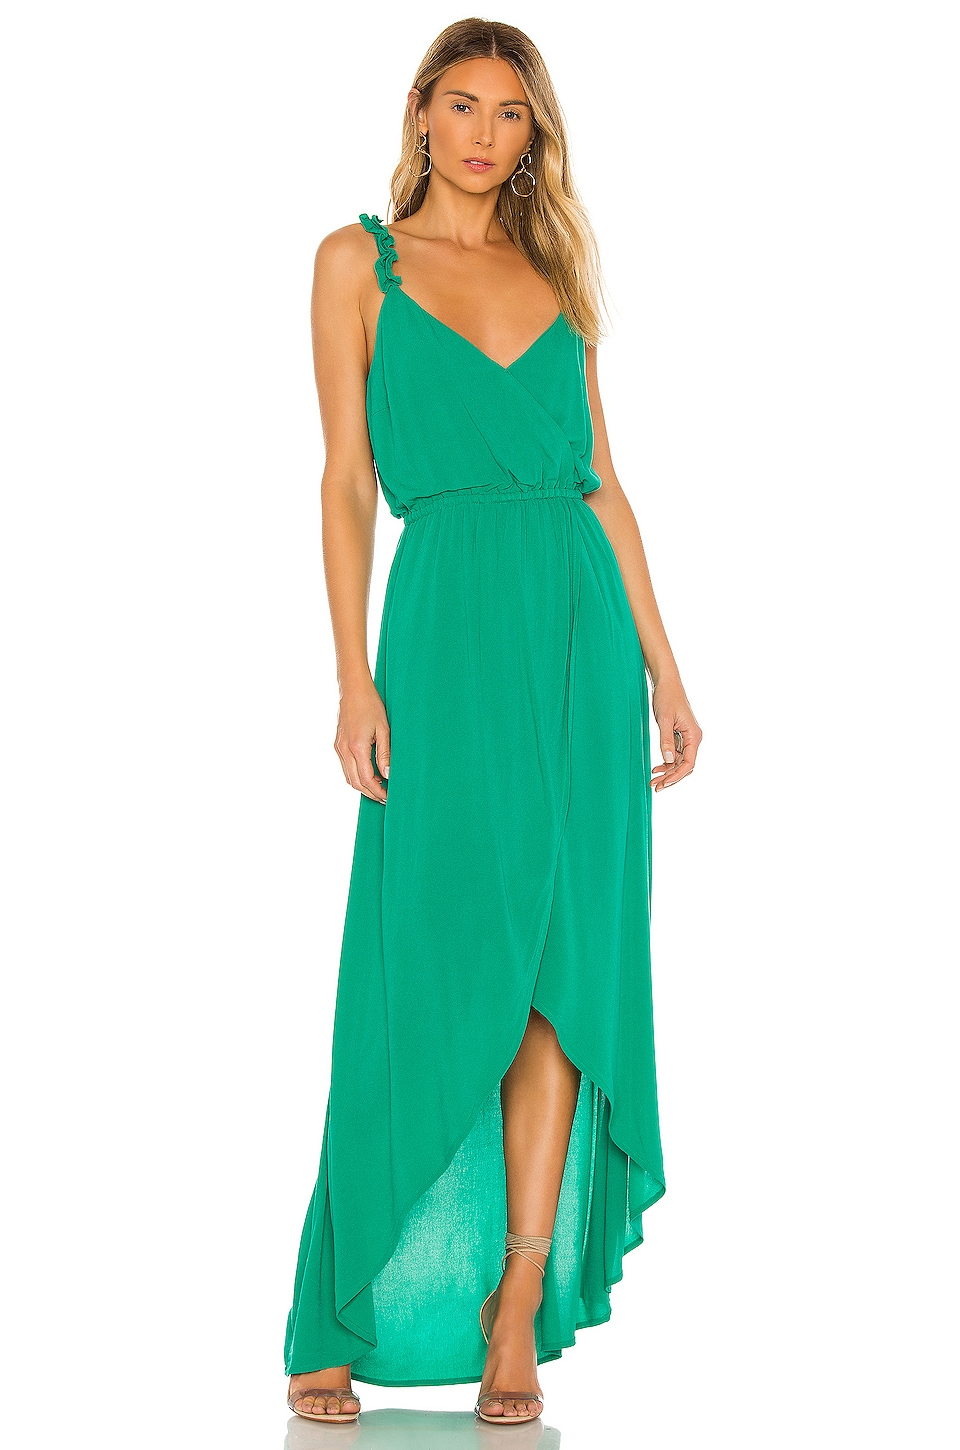 JACK by BB Dakota Ruffle & Cut Midi Dress             BB Dakota                                                                                                       CA$ 122.67 7